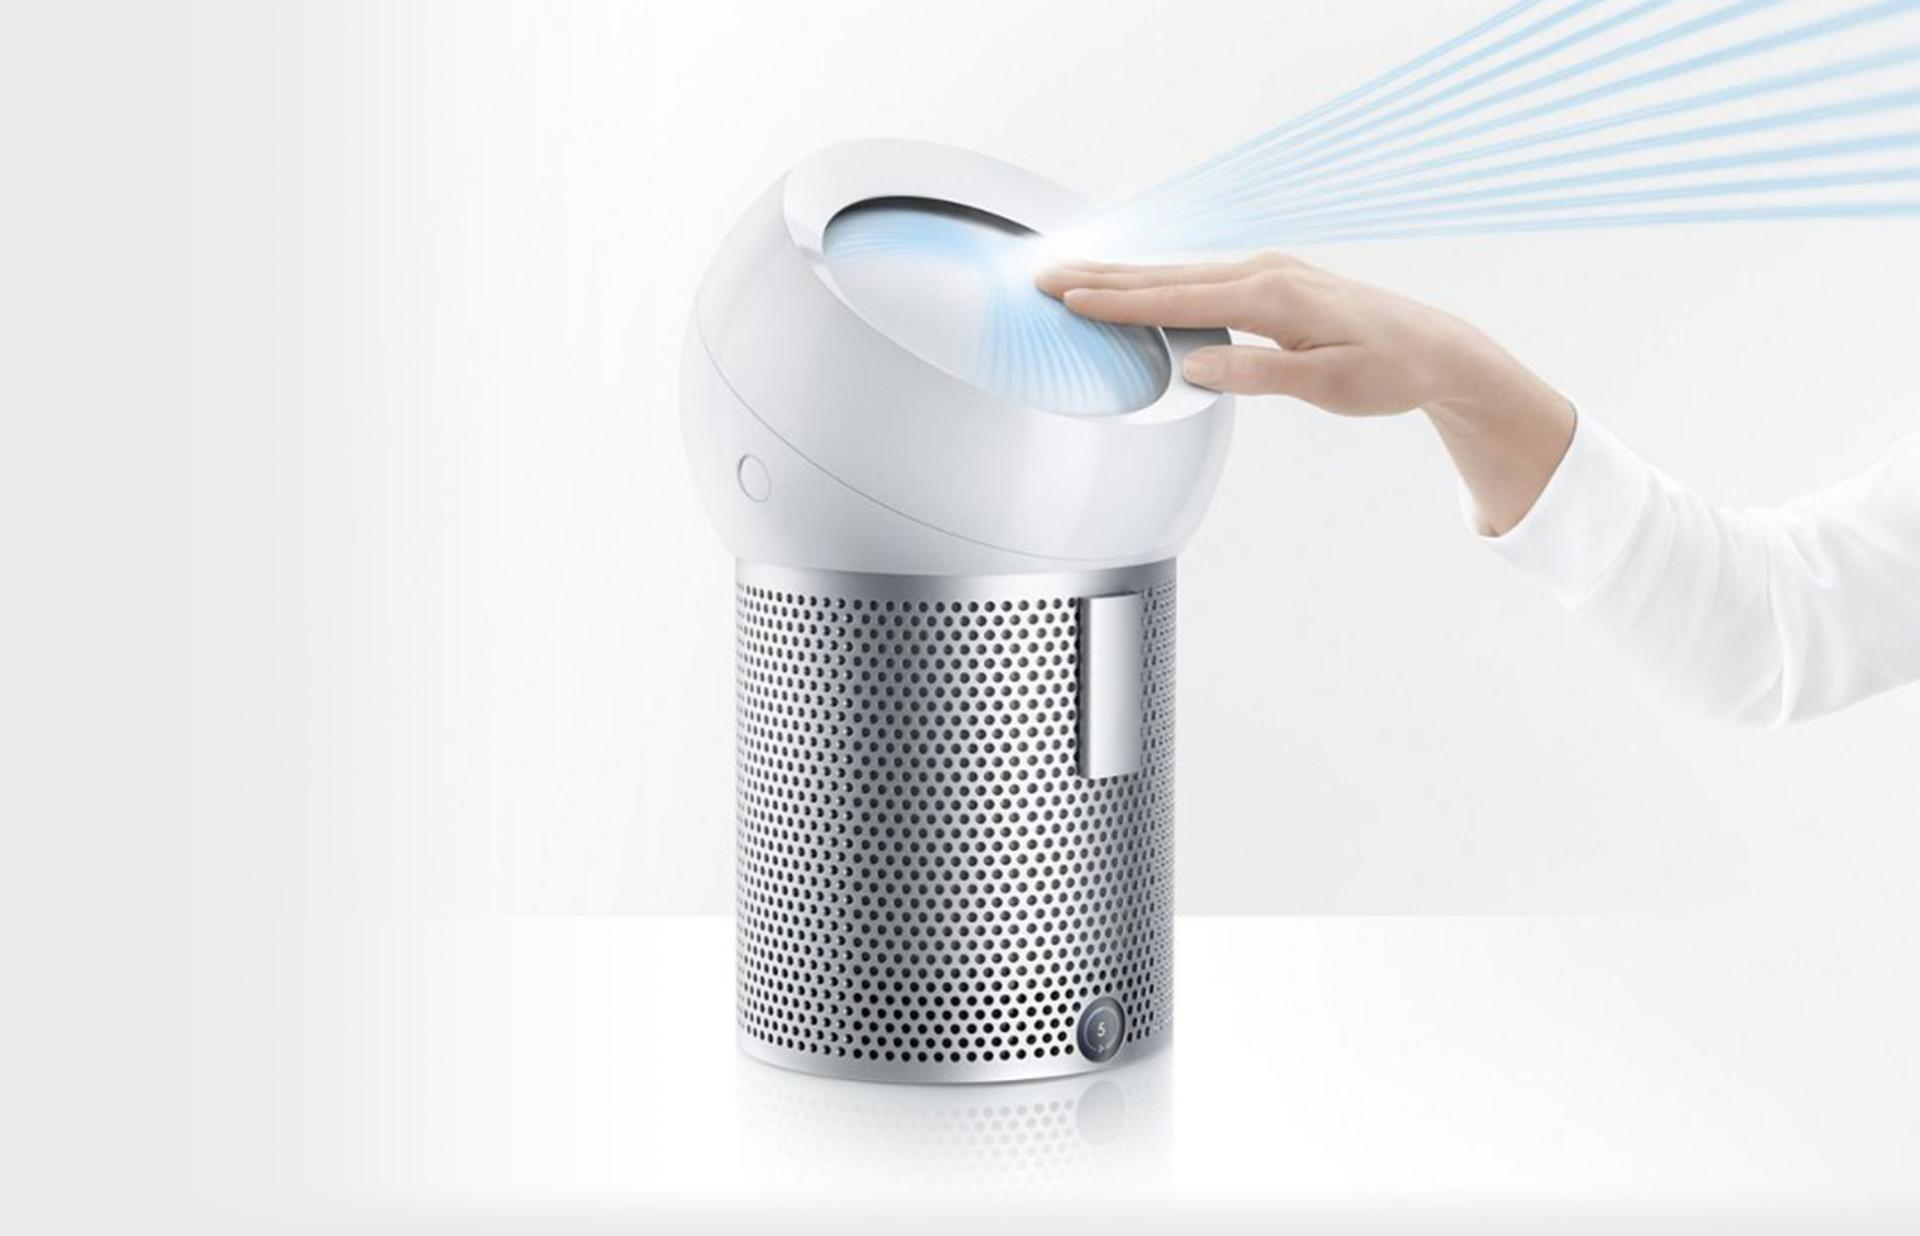 Dyson Pure Cool Me™ projecting a focused stream of purified air